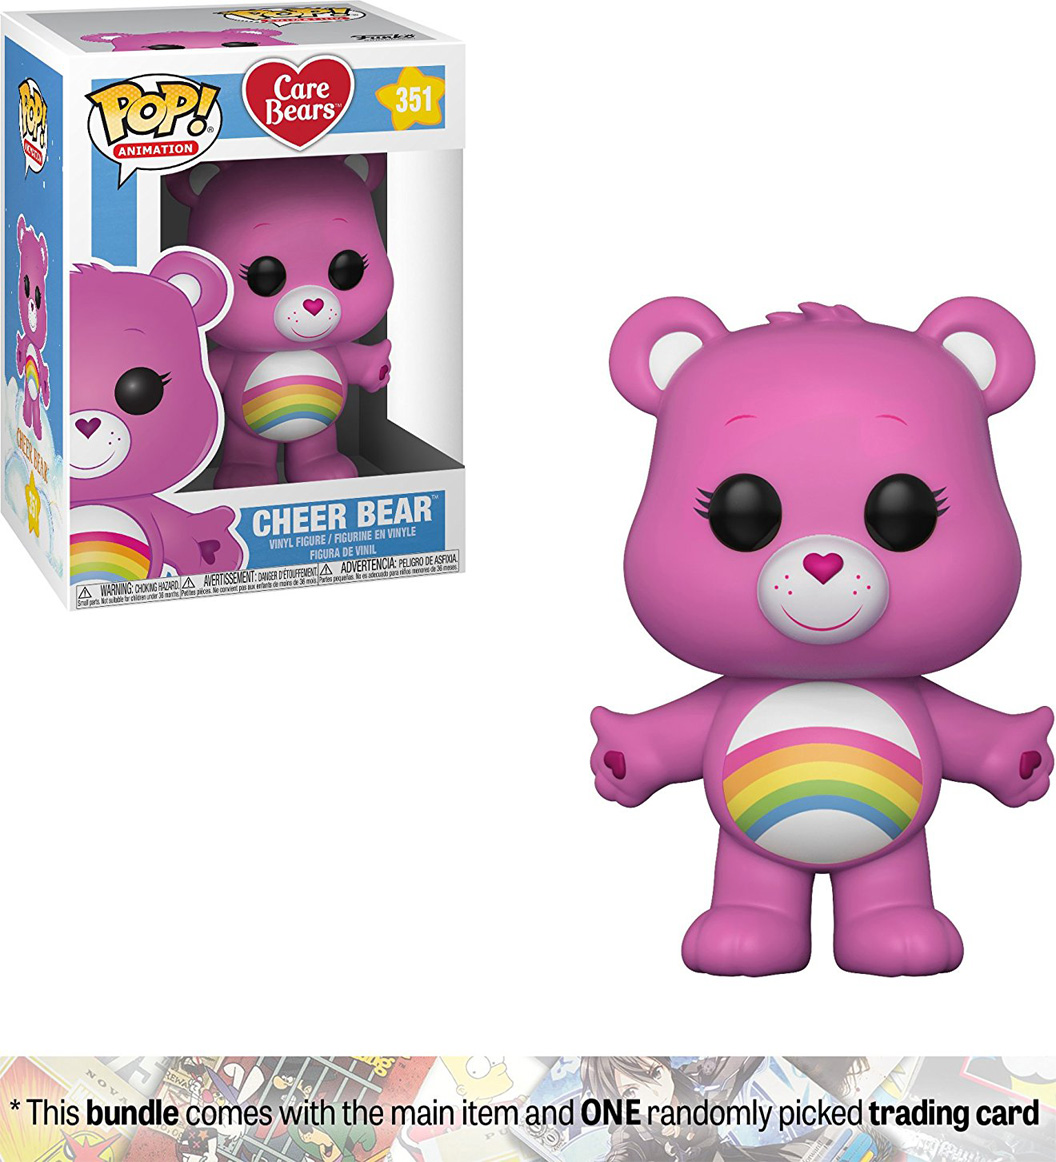 Funko POP! Vinyl Фигурка Care Bears: Cheer Bear 26698 недорого